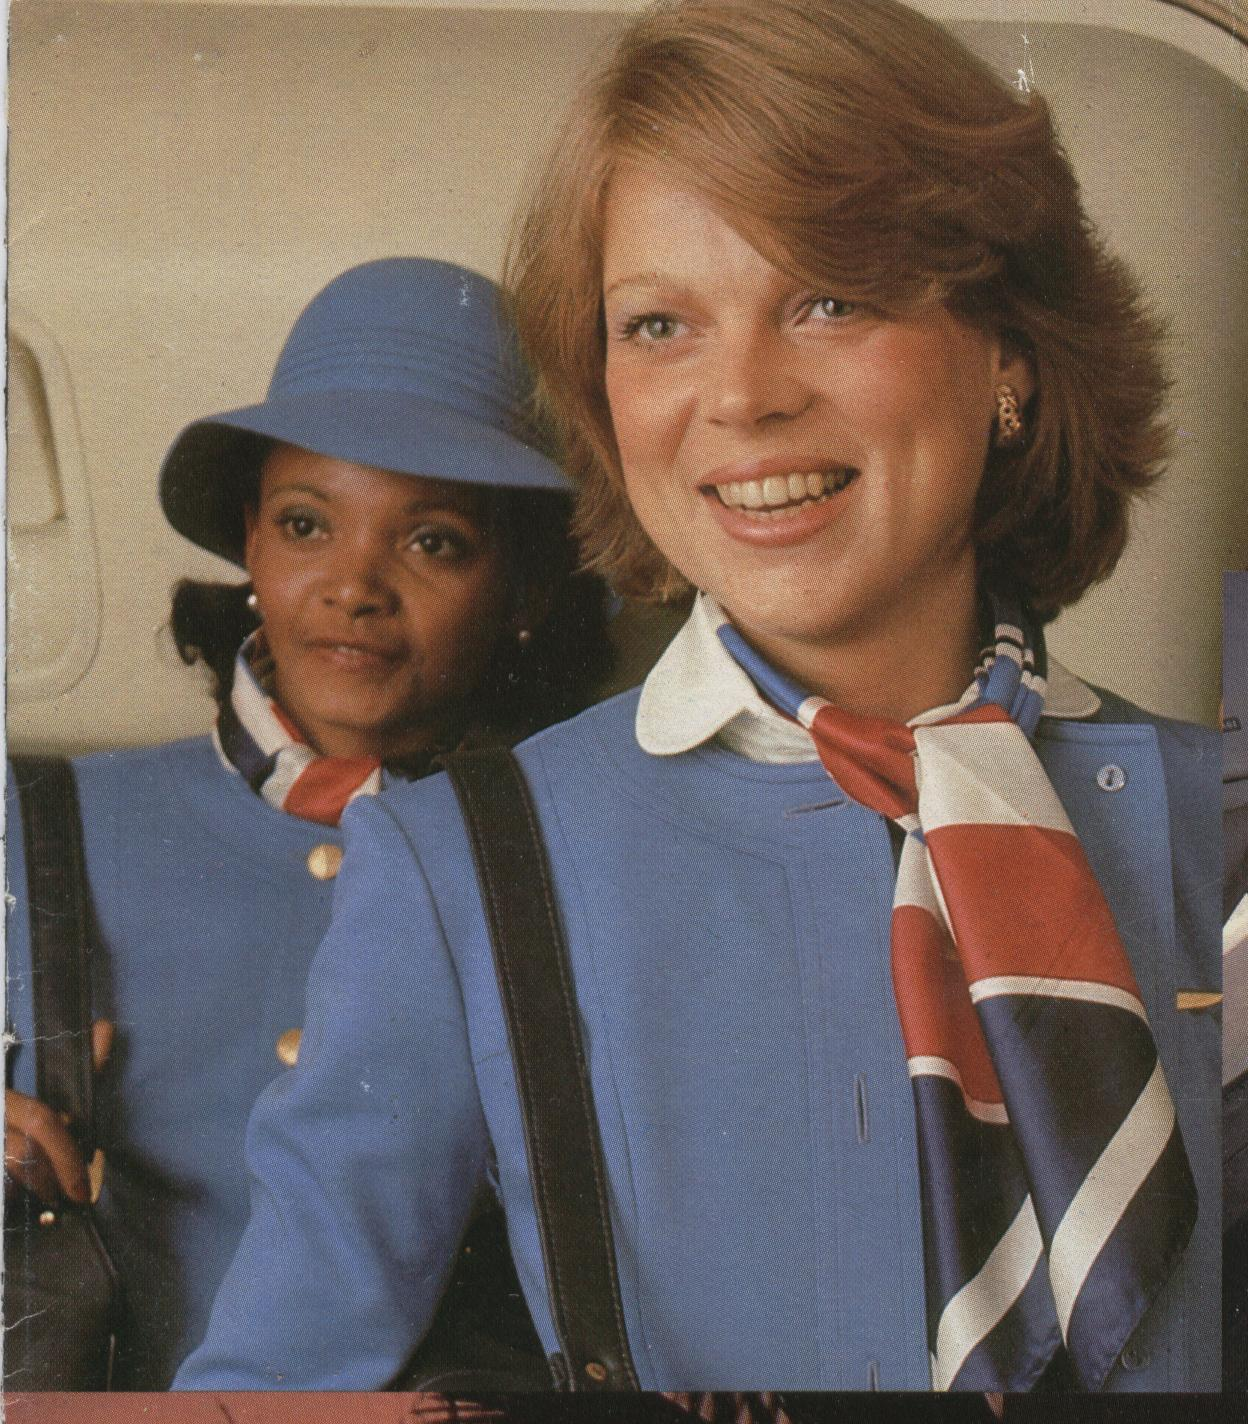 1977 Pan Am flight attendant Jennifer Andrews (left) and colleague pose in the doorway of a 747.  Their uniform was designed by Hollywood costume designer, Edith Head and introduced in 1975.